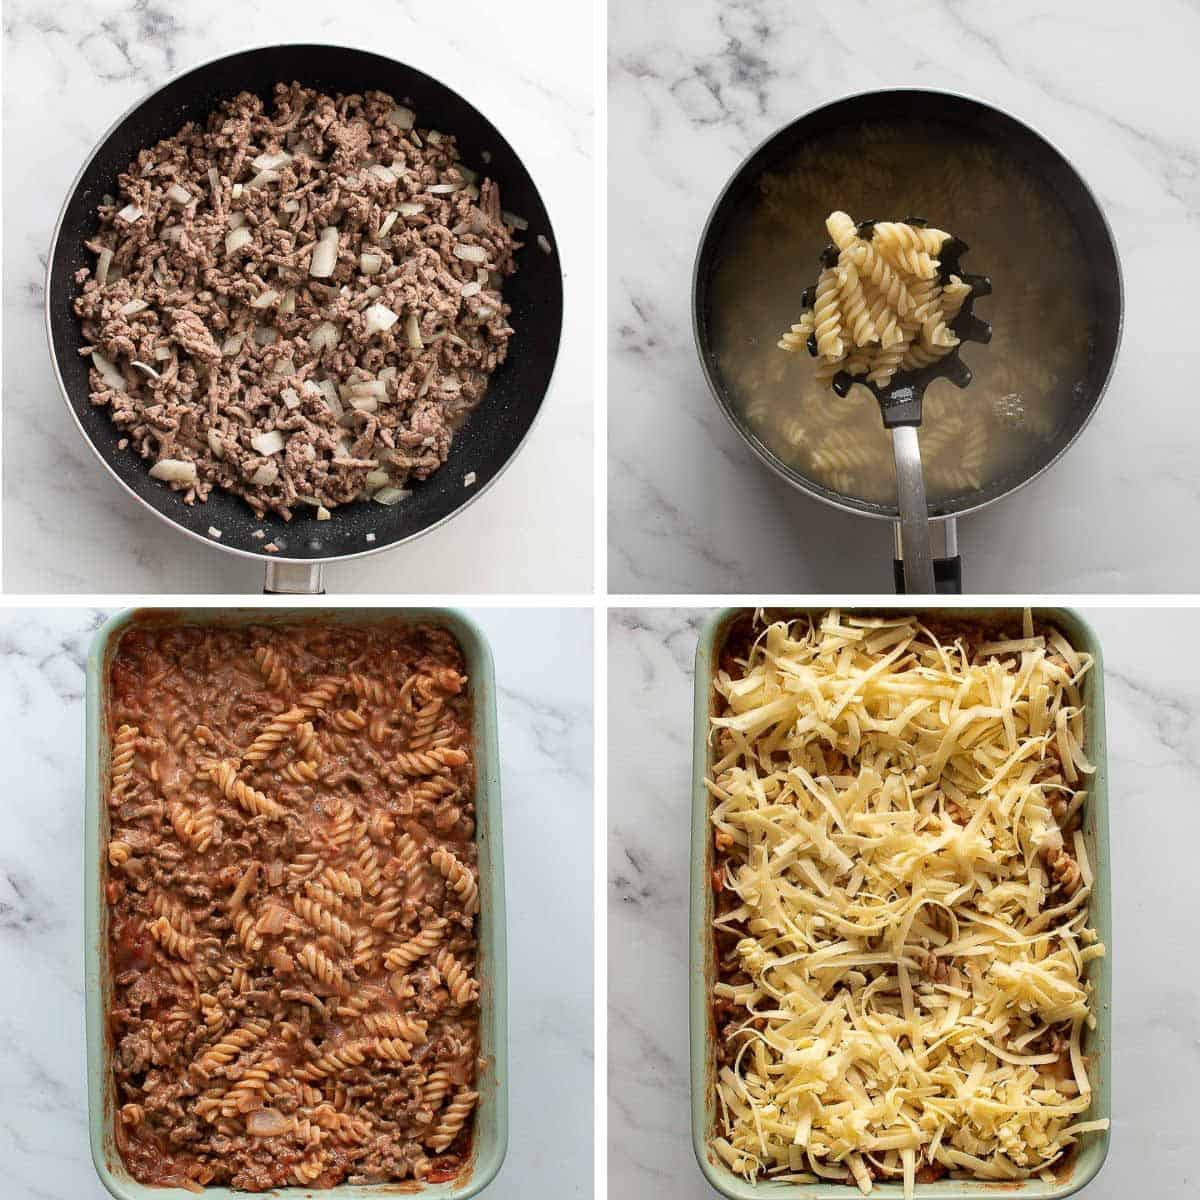 Step by step images showing how to make hamburger casserole.